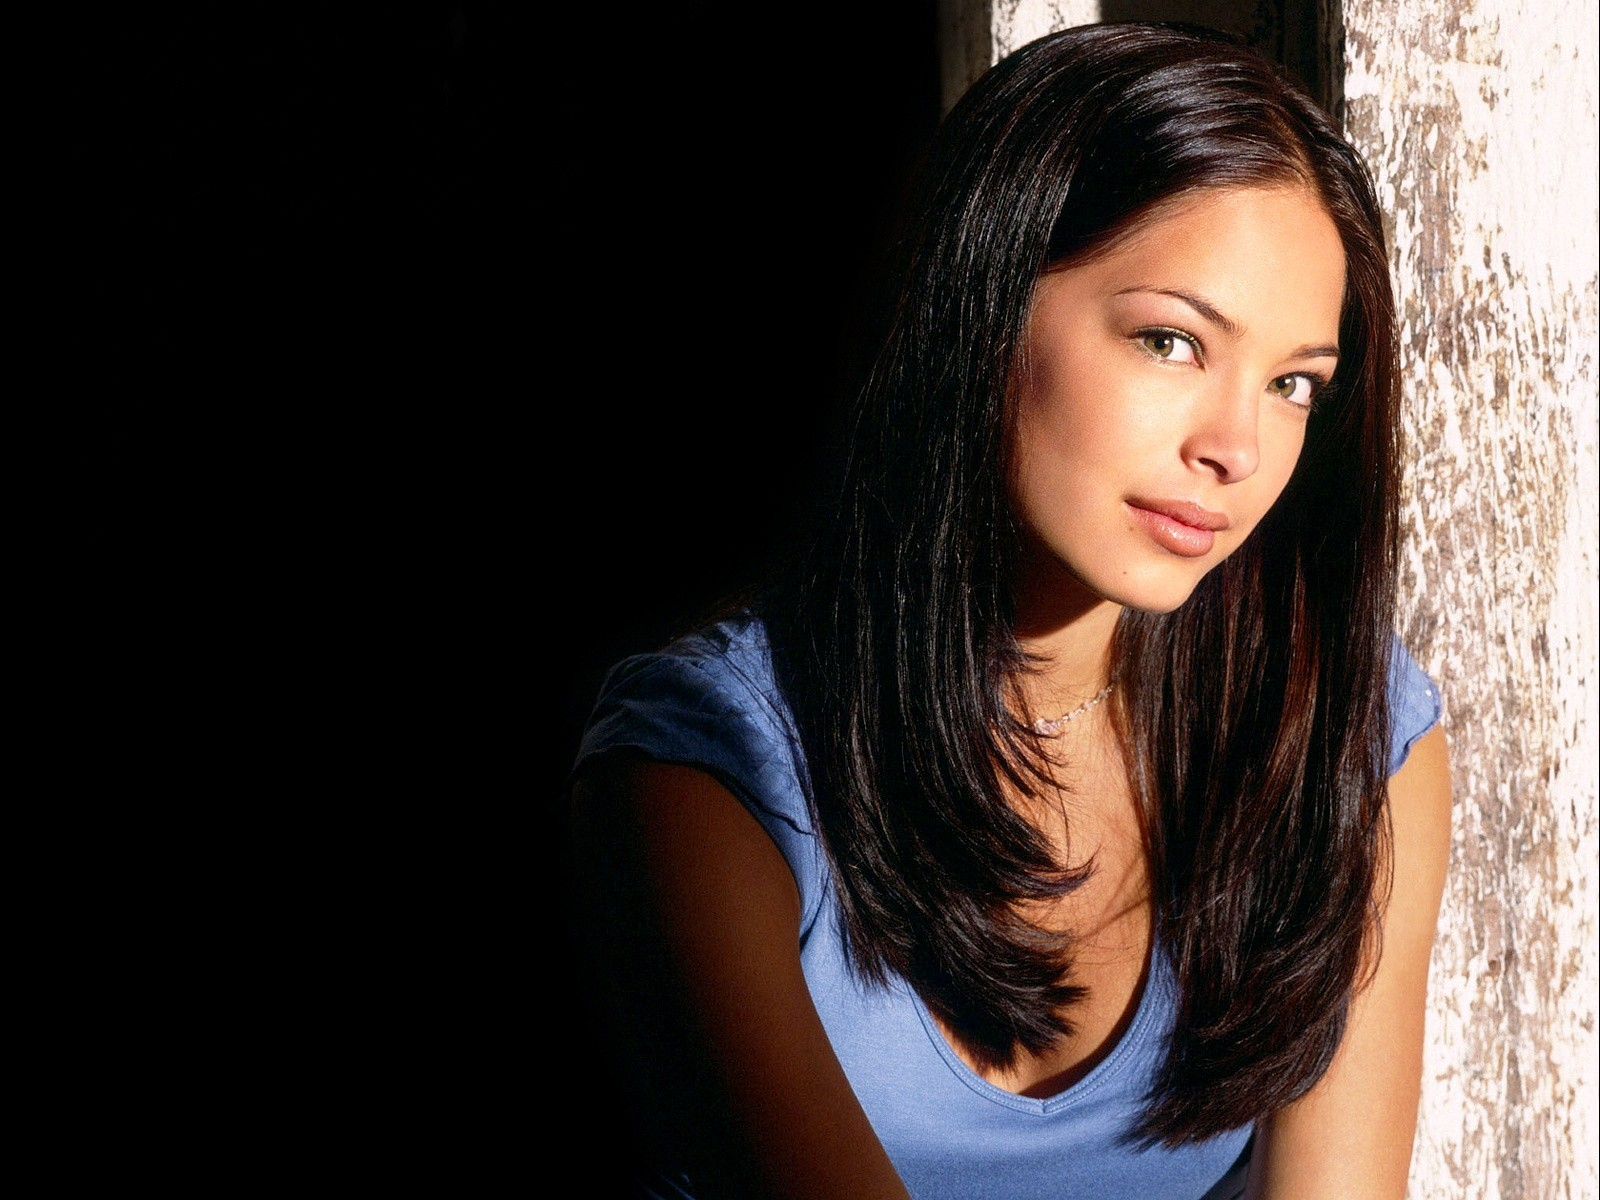 kristin kreuk desktop wallpaper